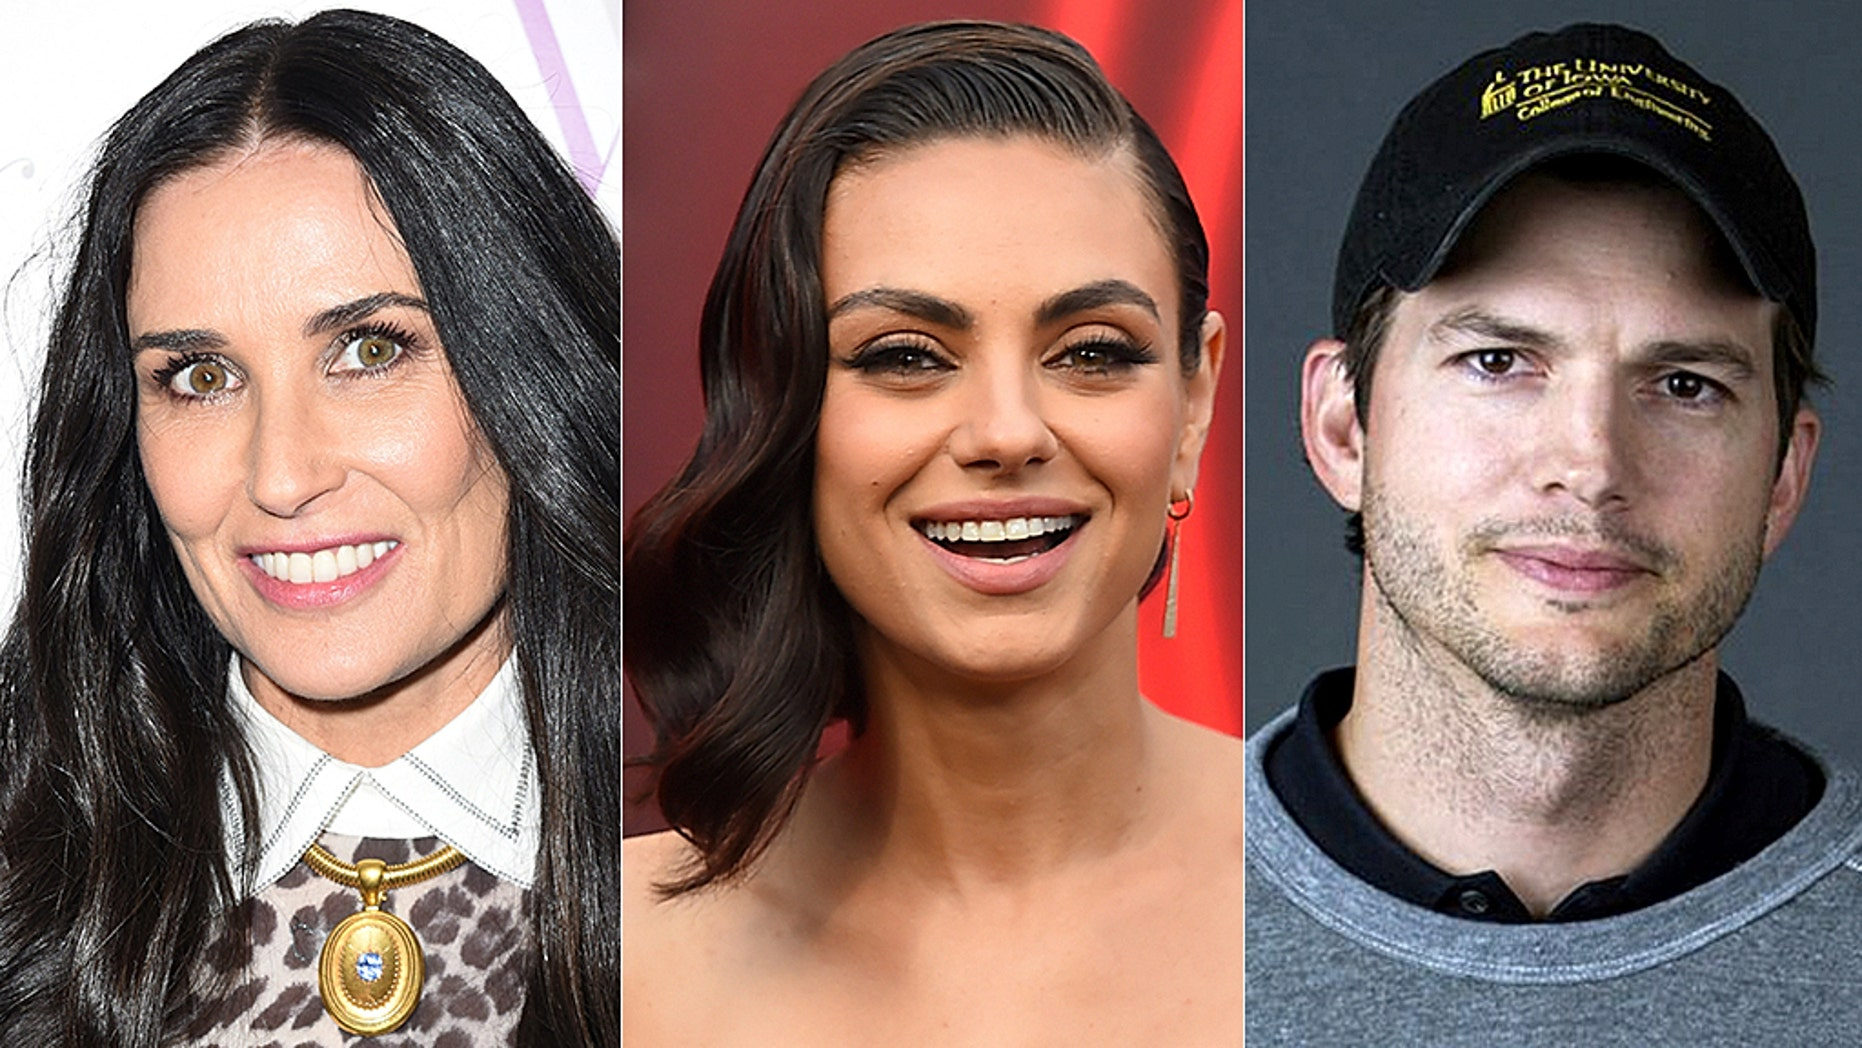 Mila Kunis (center) opened up about husband Ashton Kutcher's former marriage to Demi Moore.